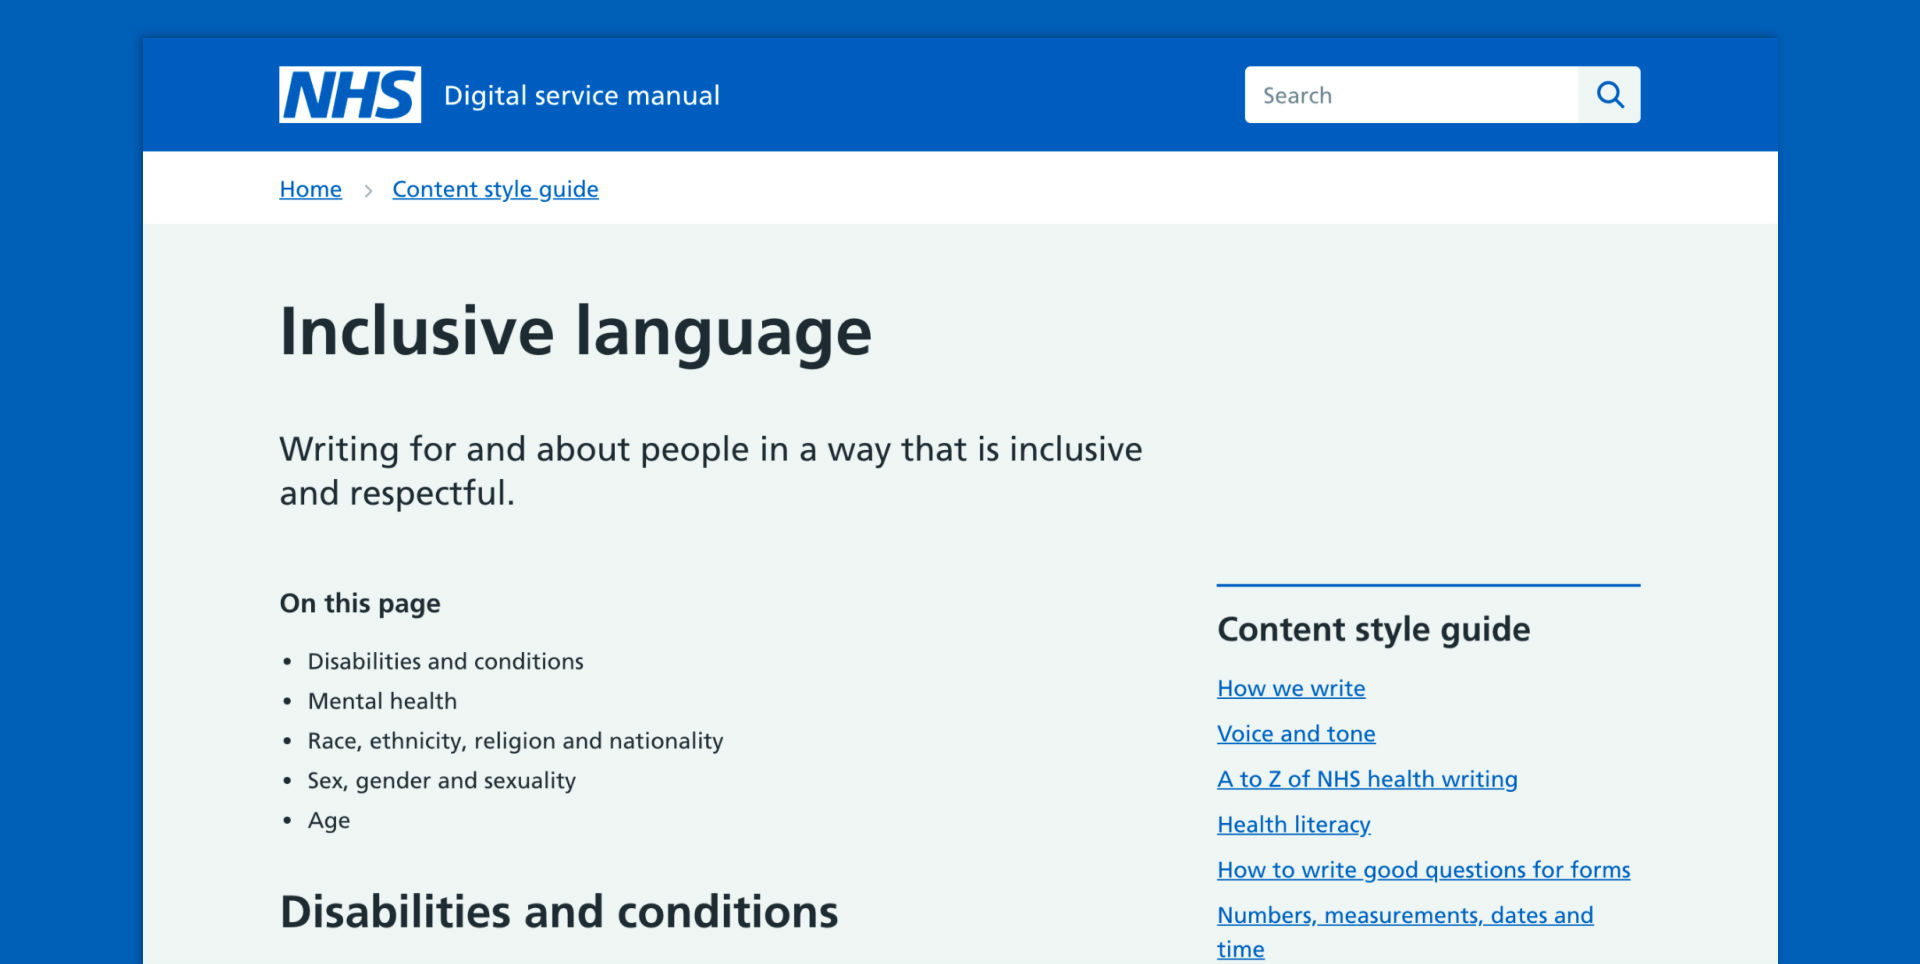 A screenshot of the digital service manual indicating inclusive language